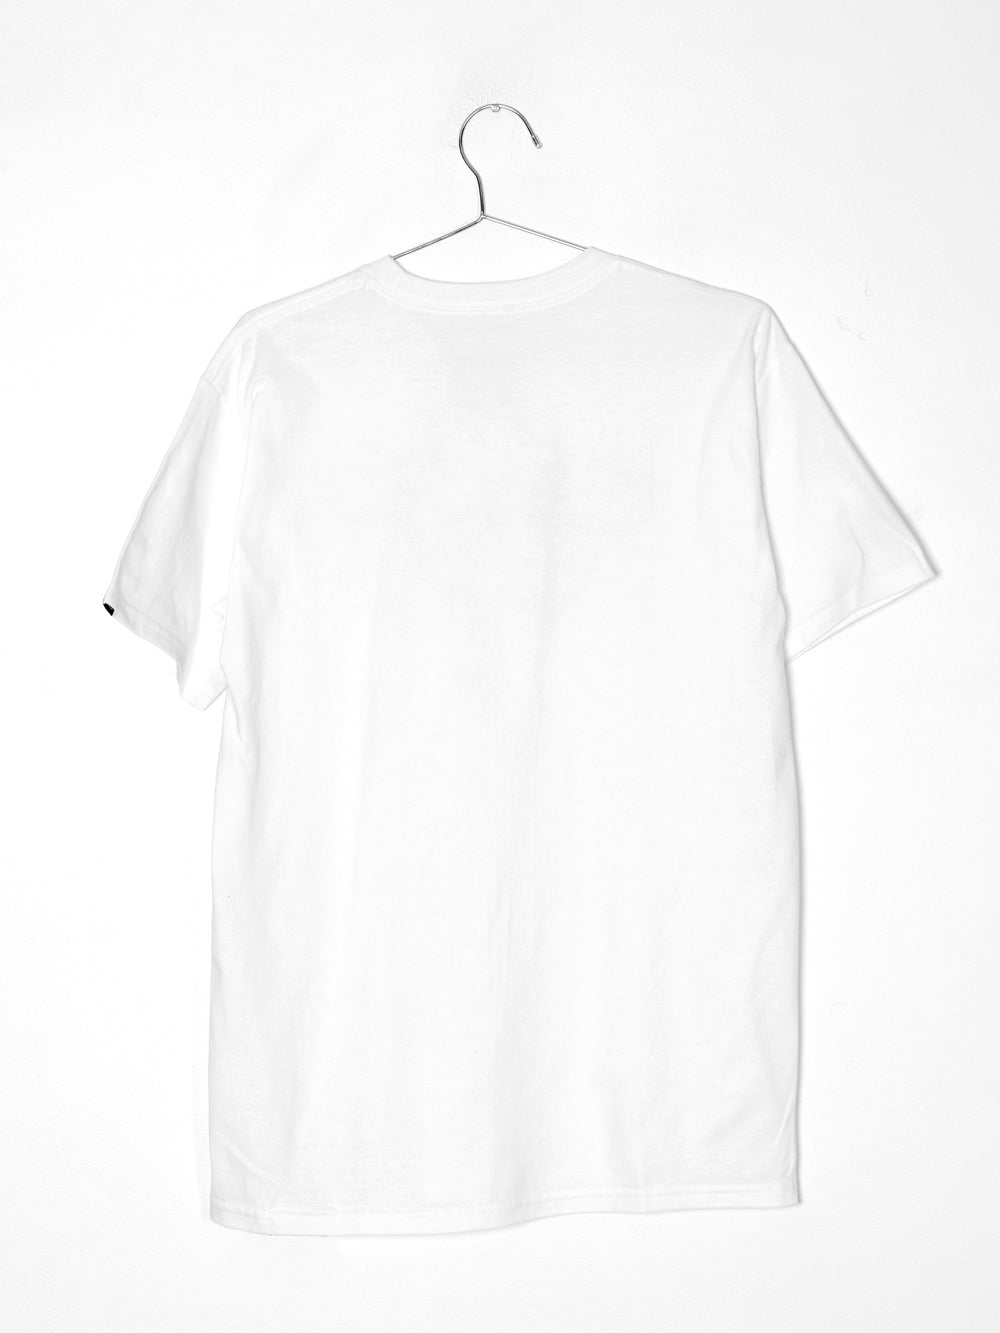 MENS FULL PATCH SHORT SLEEVE T-SHIRT - WHITE